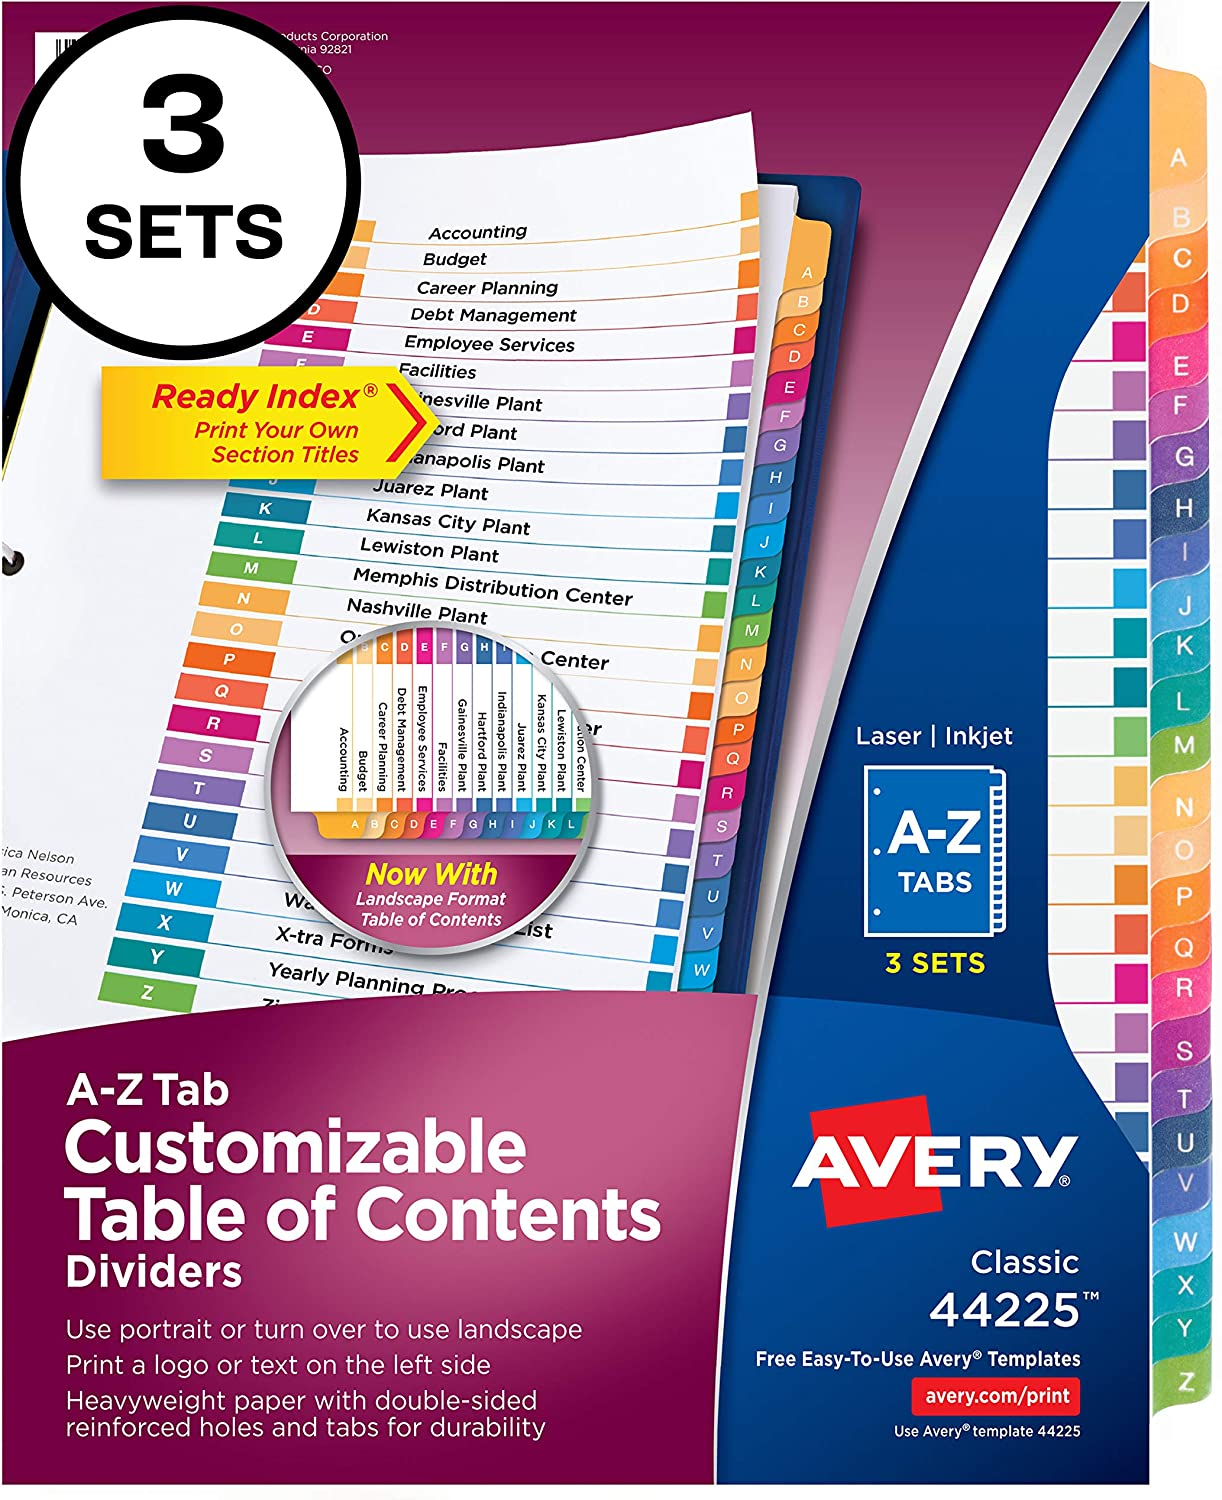 Avery A-Z Tab Dividers for 3 Ring Binders, Customizable Table of Contents, Multicolor Tabs, 3 Sets (44225) : Office Products